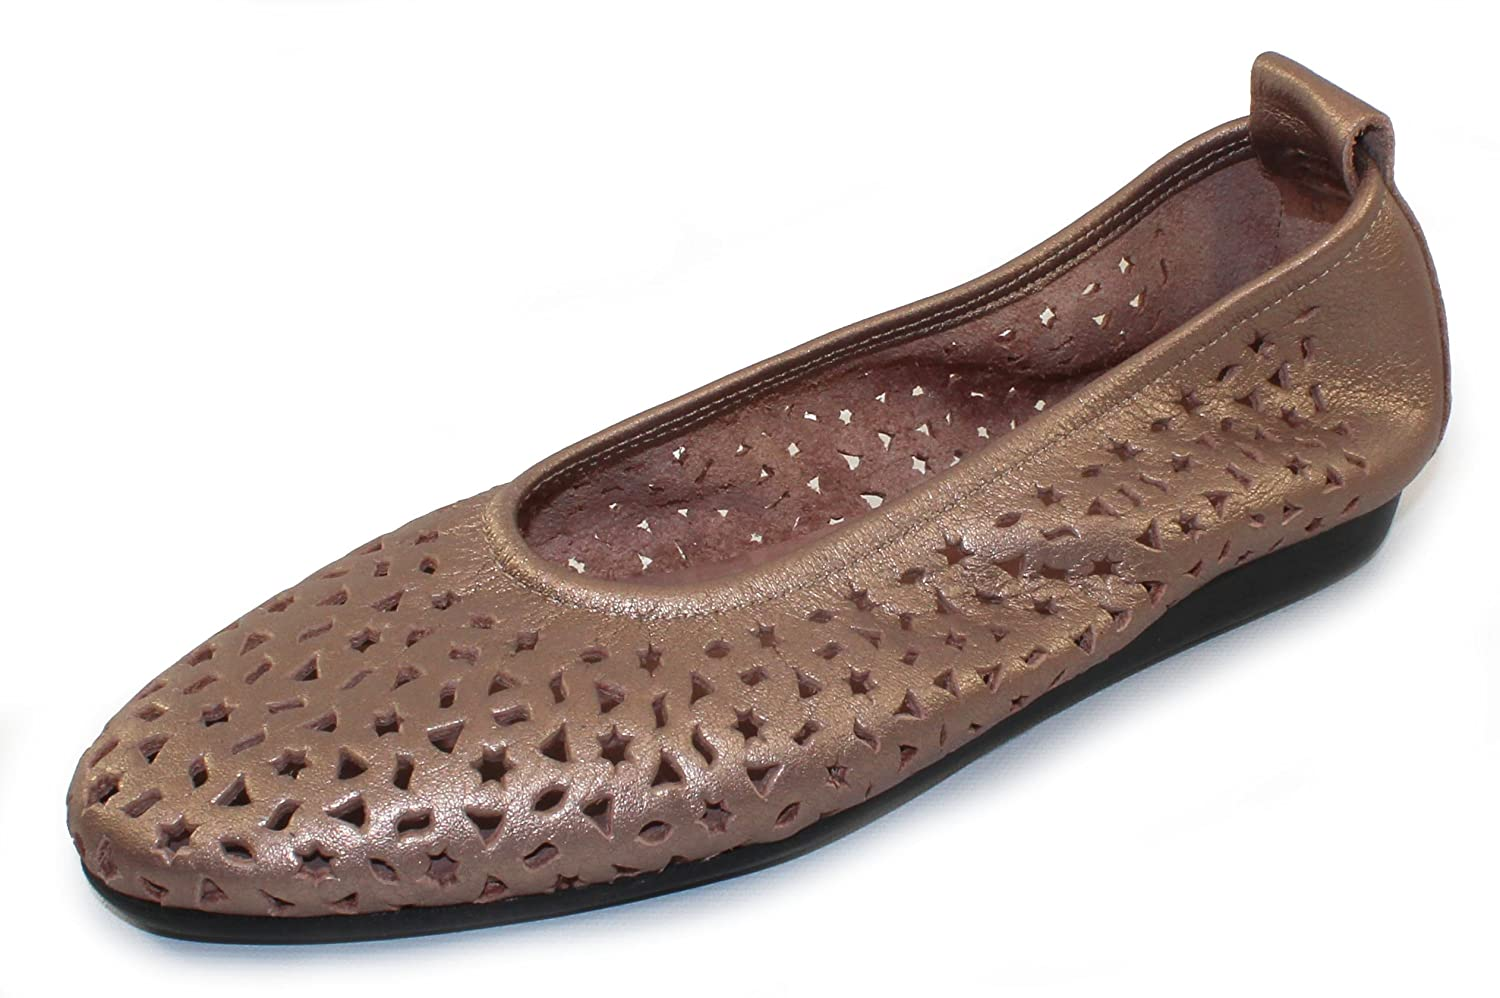 Arche Women's Lilly In Antico Fast Metal Pearlized Leather - Metallic Blush - Size 38 M